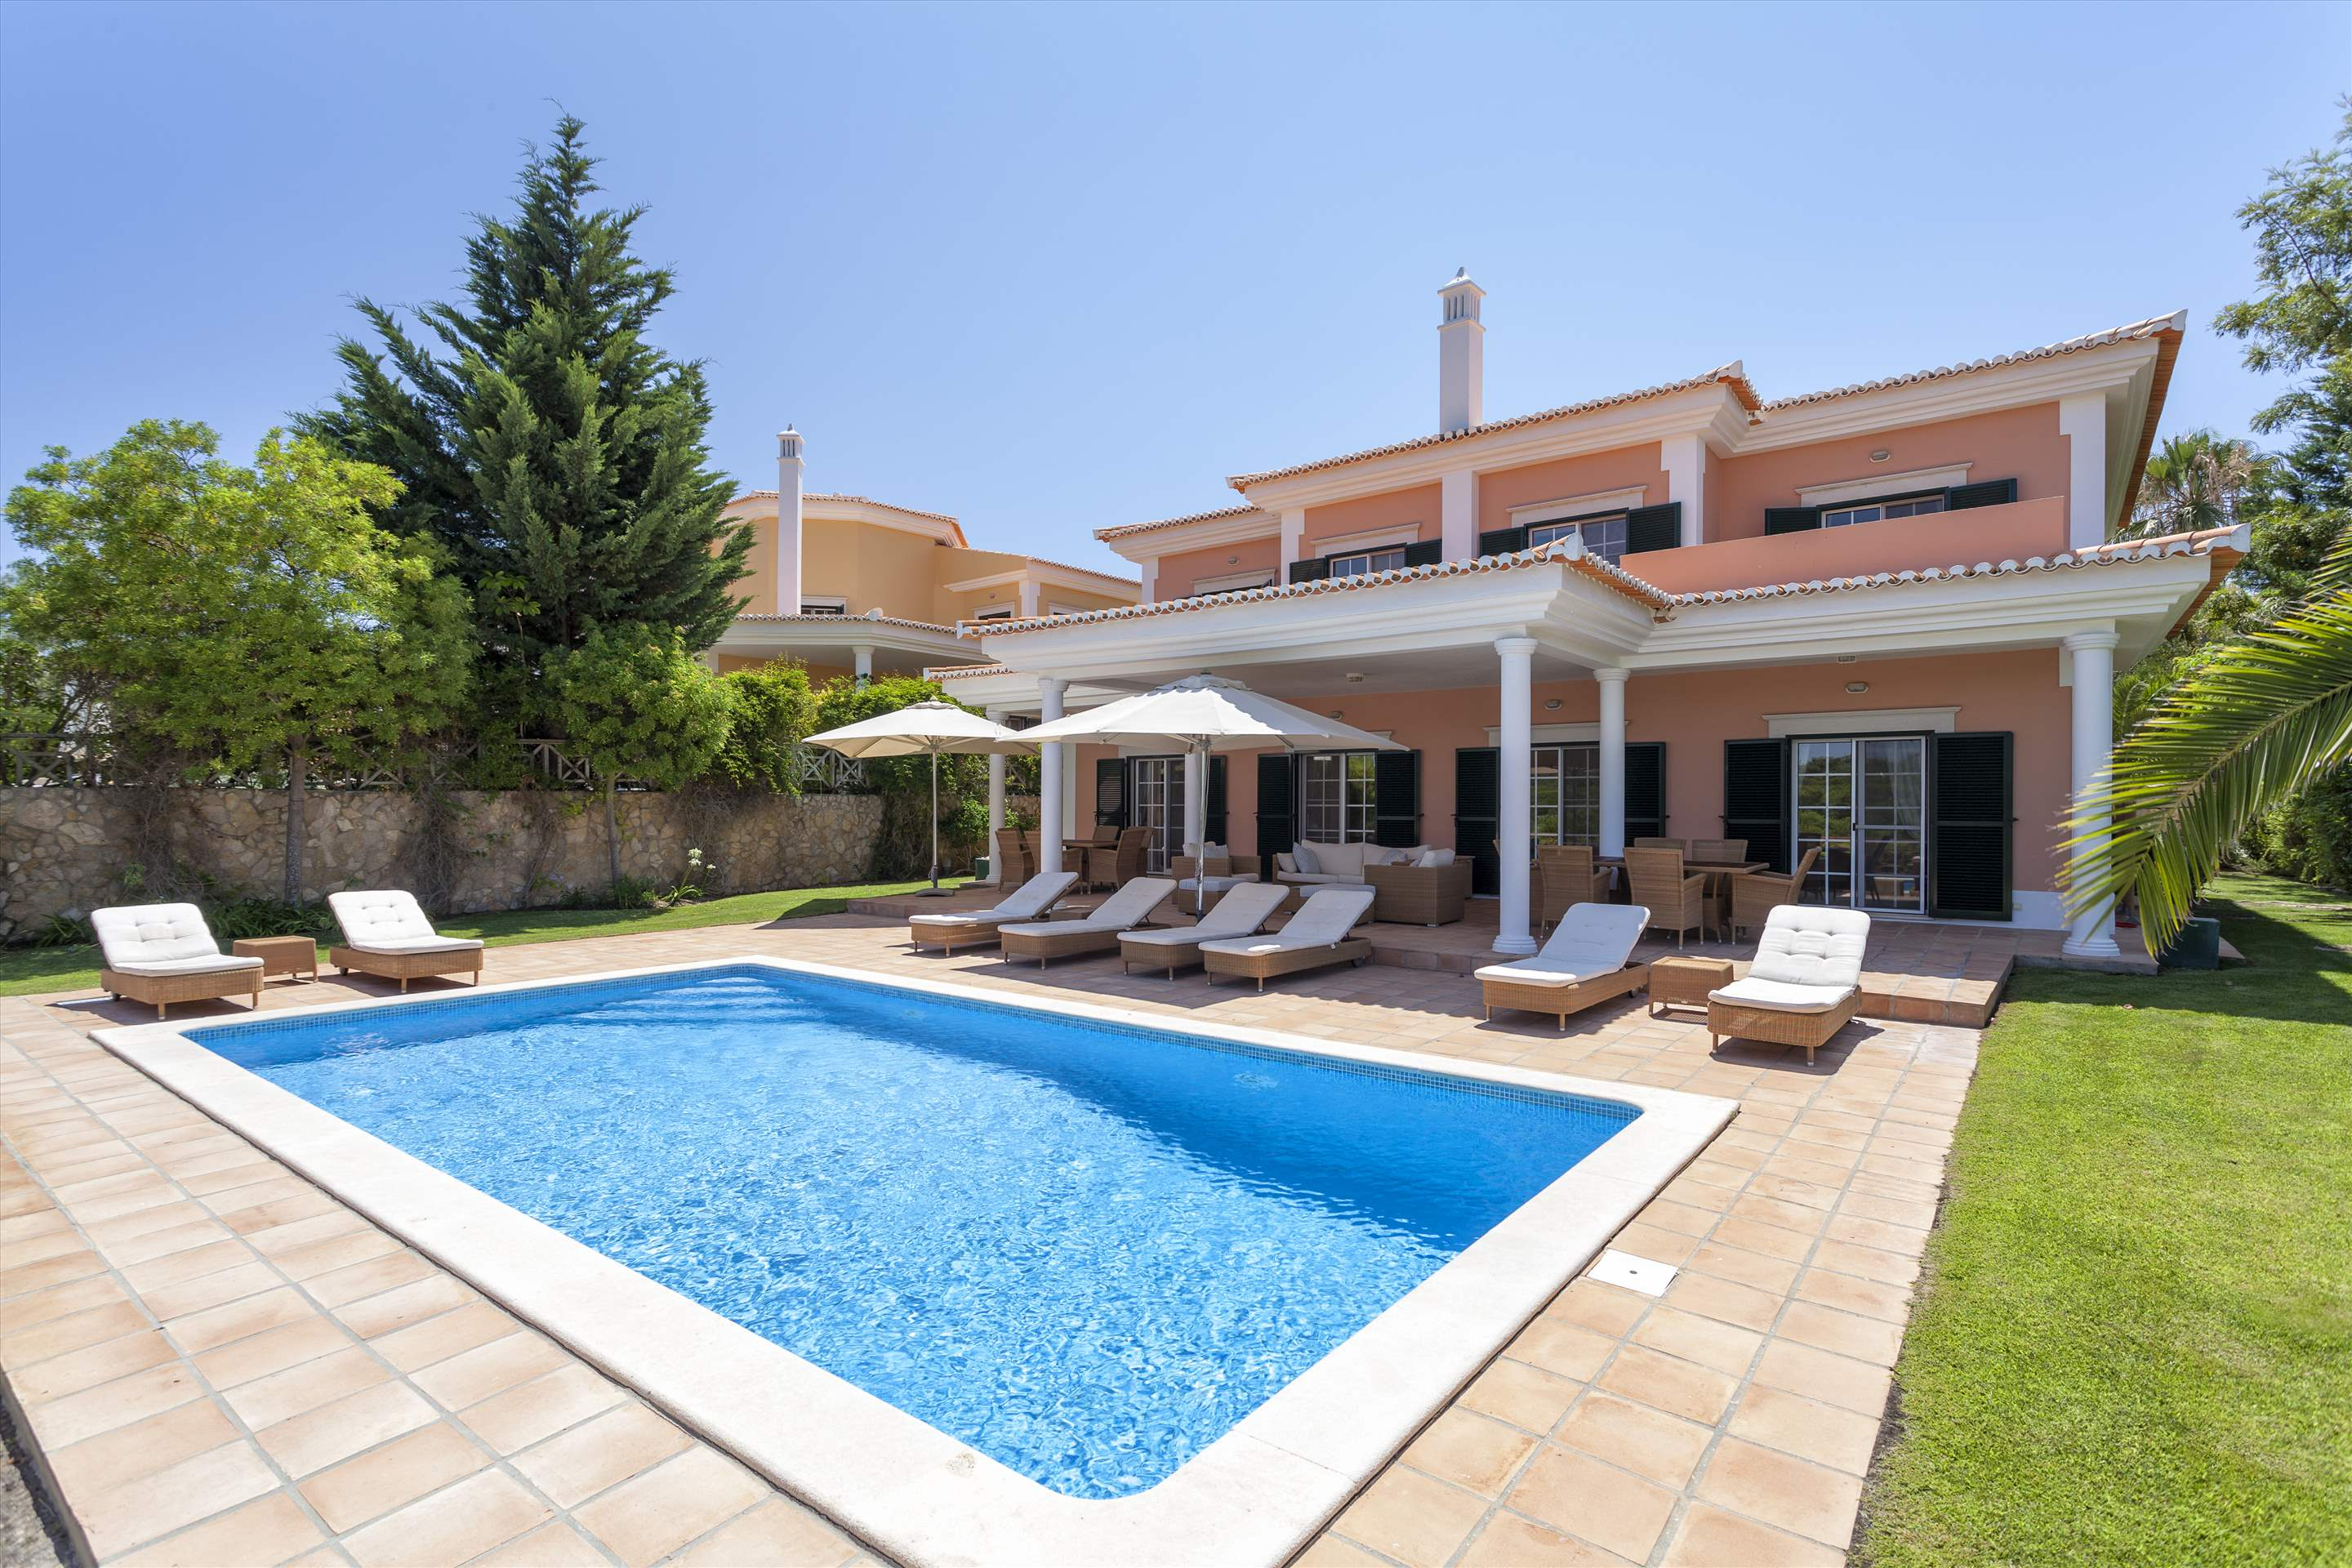 Martinhal Quinta Villa (4 Bedrooms), 4 bedroom villa in Martinhal Quinta Resort, Algarve Photo #1